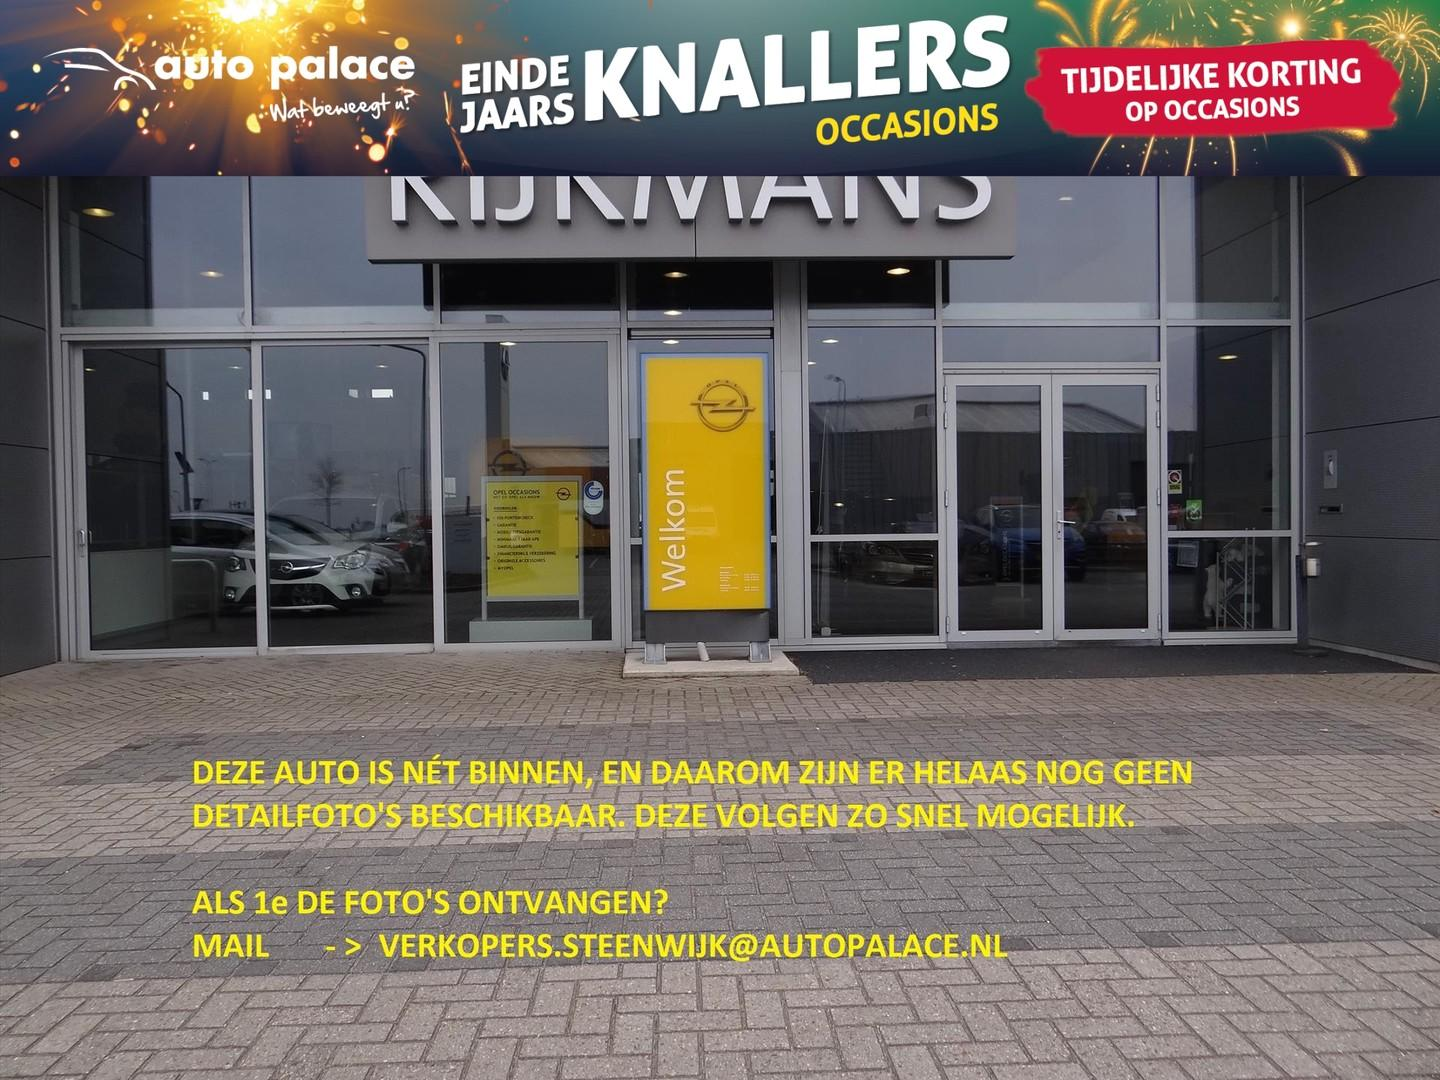 "Opel Astra Cosmo 1.4t 140 pk - navi - agr - 17"" lichtmetaal - climate control - cruise control - parkeersensor achter - zeer compleet"